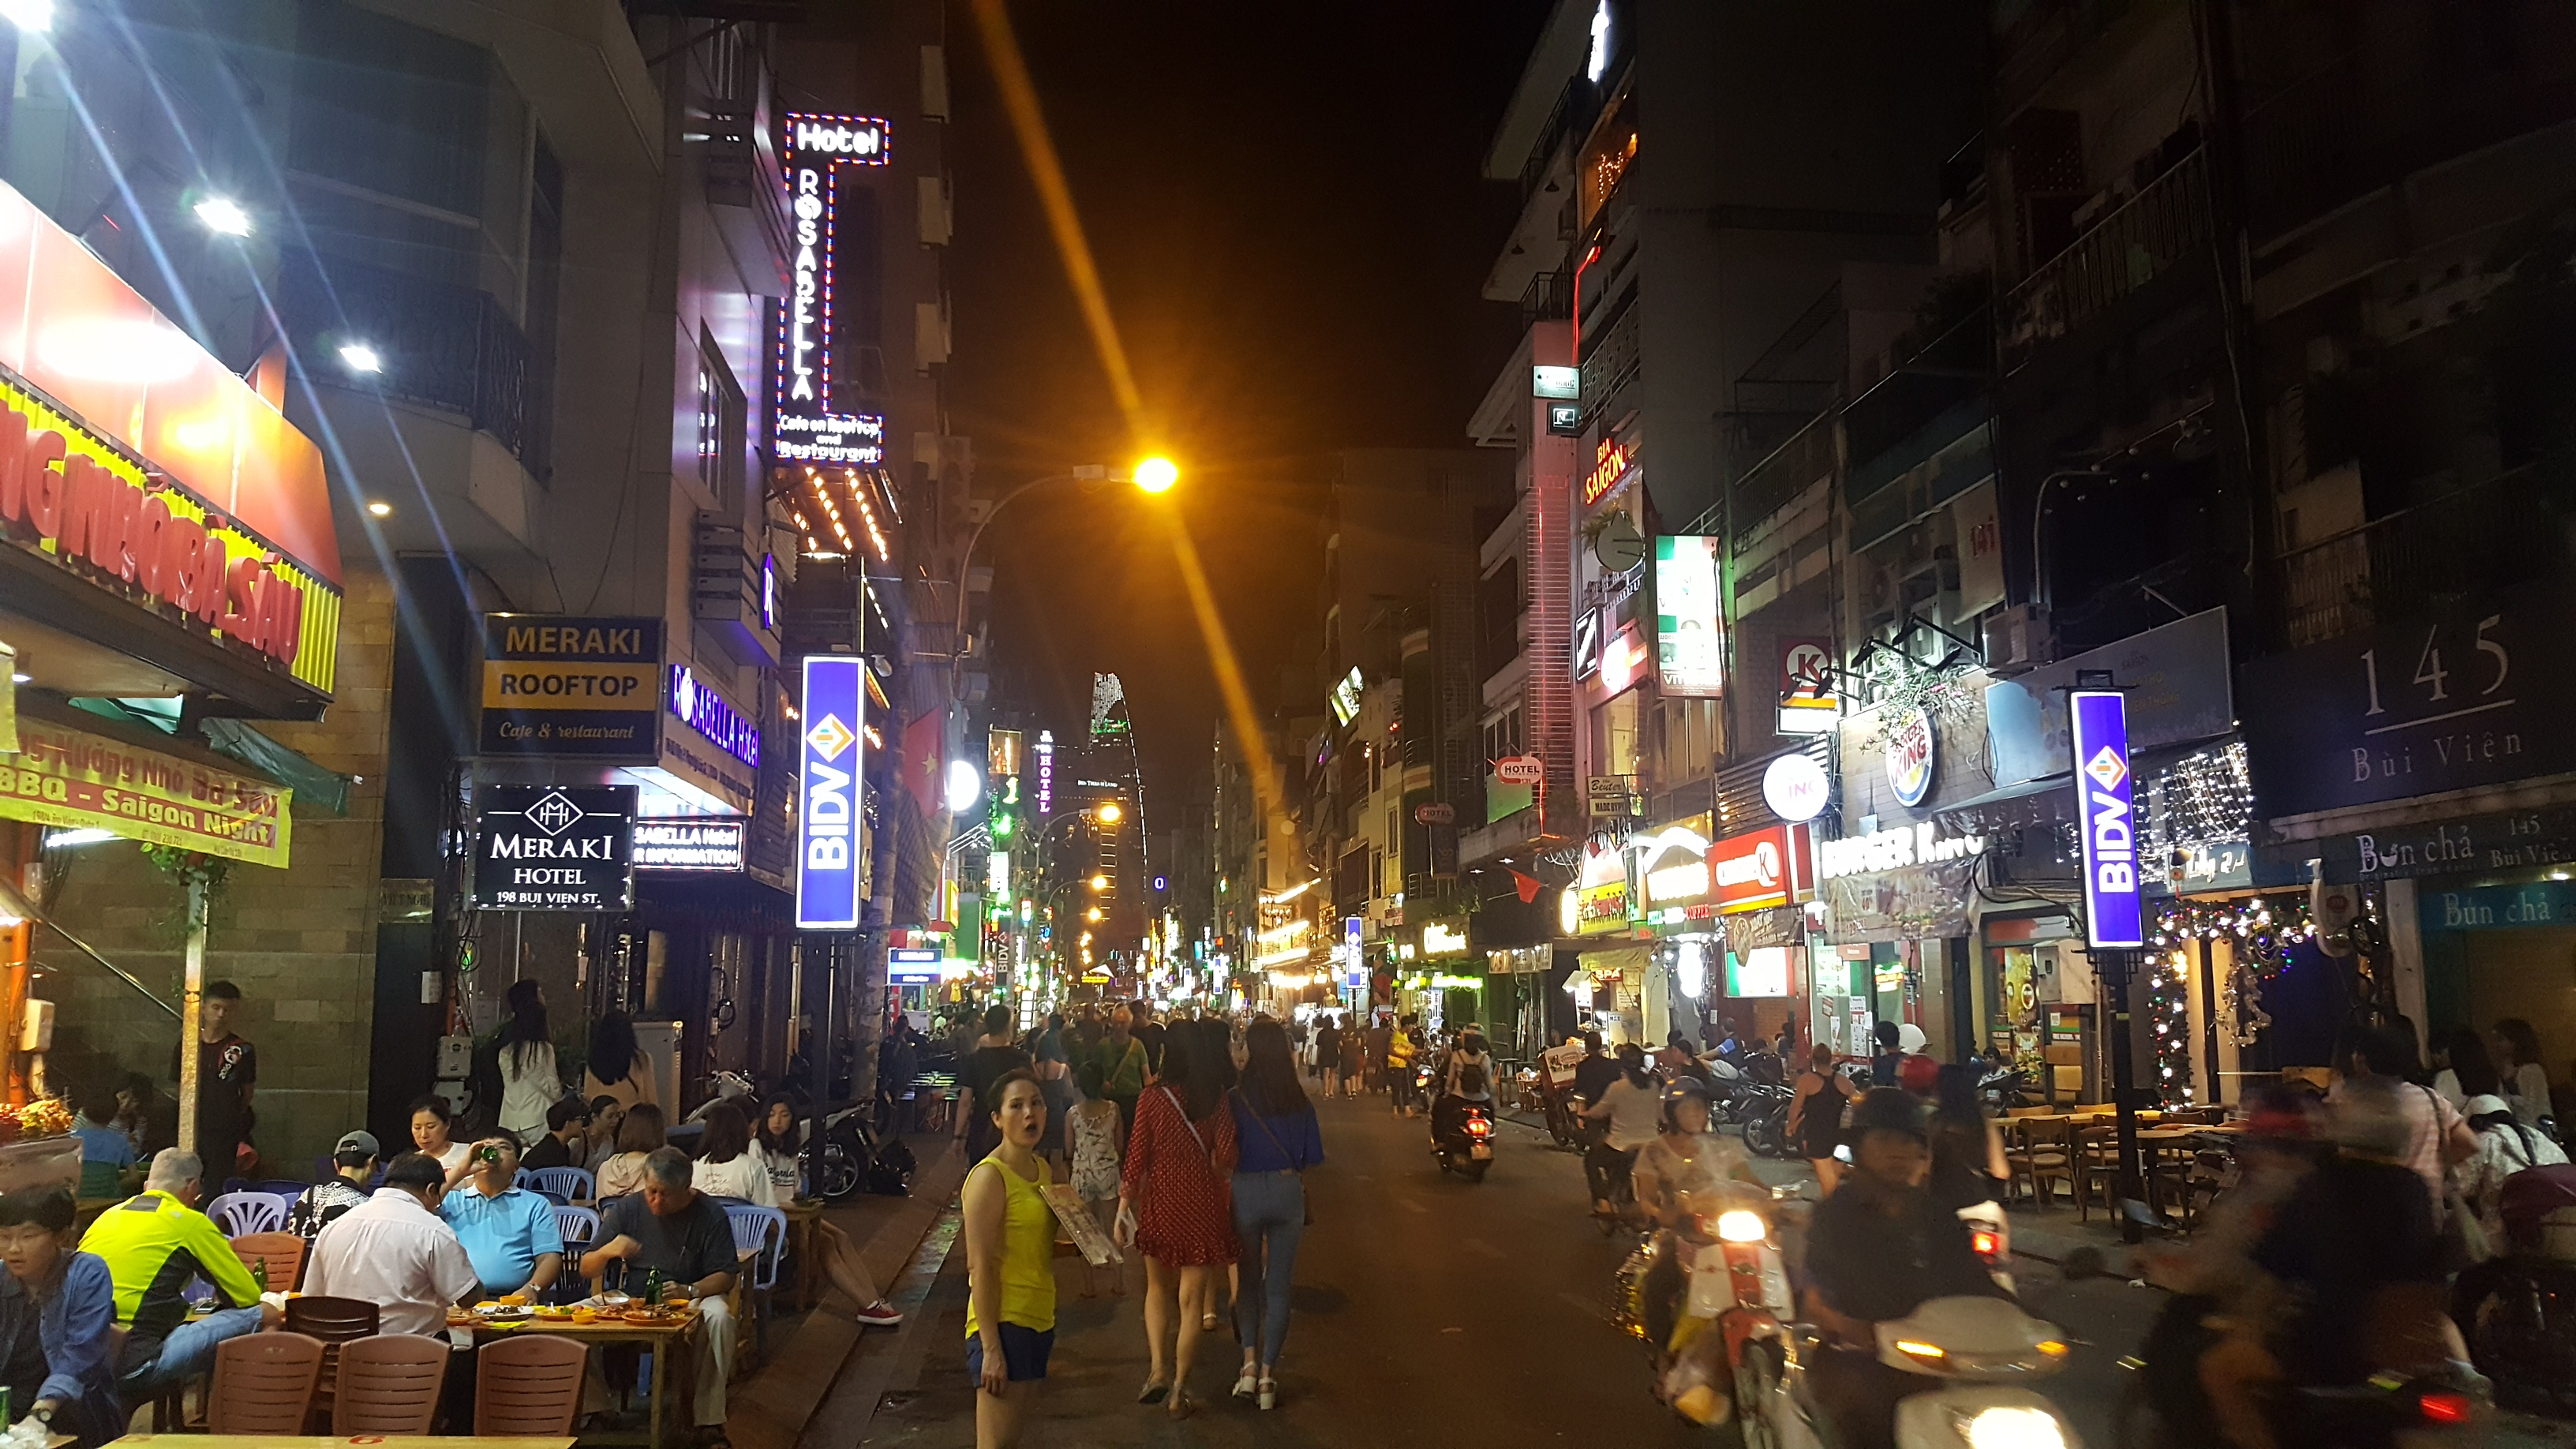 A busy street at night. Lined with bars, restaurants and shops with lit signage, the pavements are full of tables and diners, scooters and pedestrians fill the street.